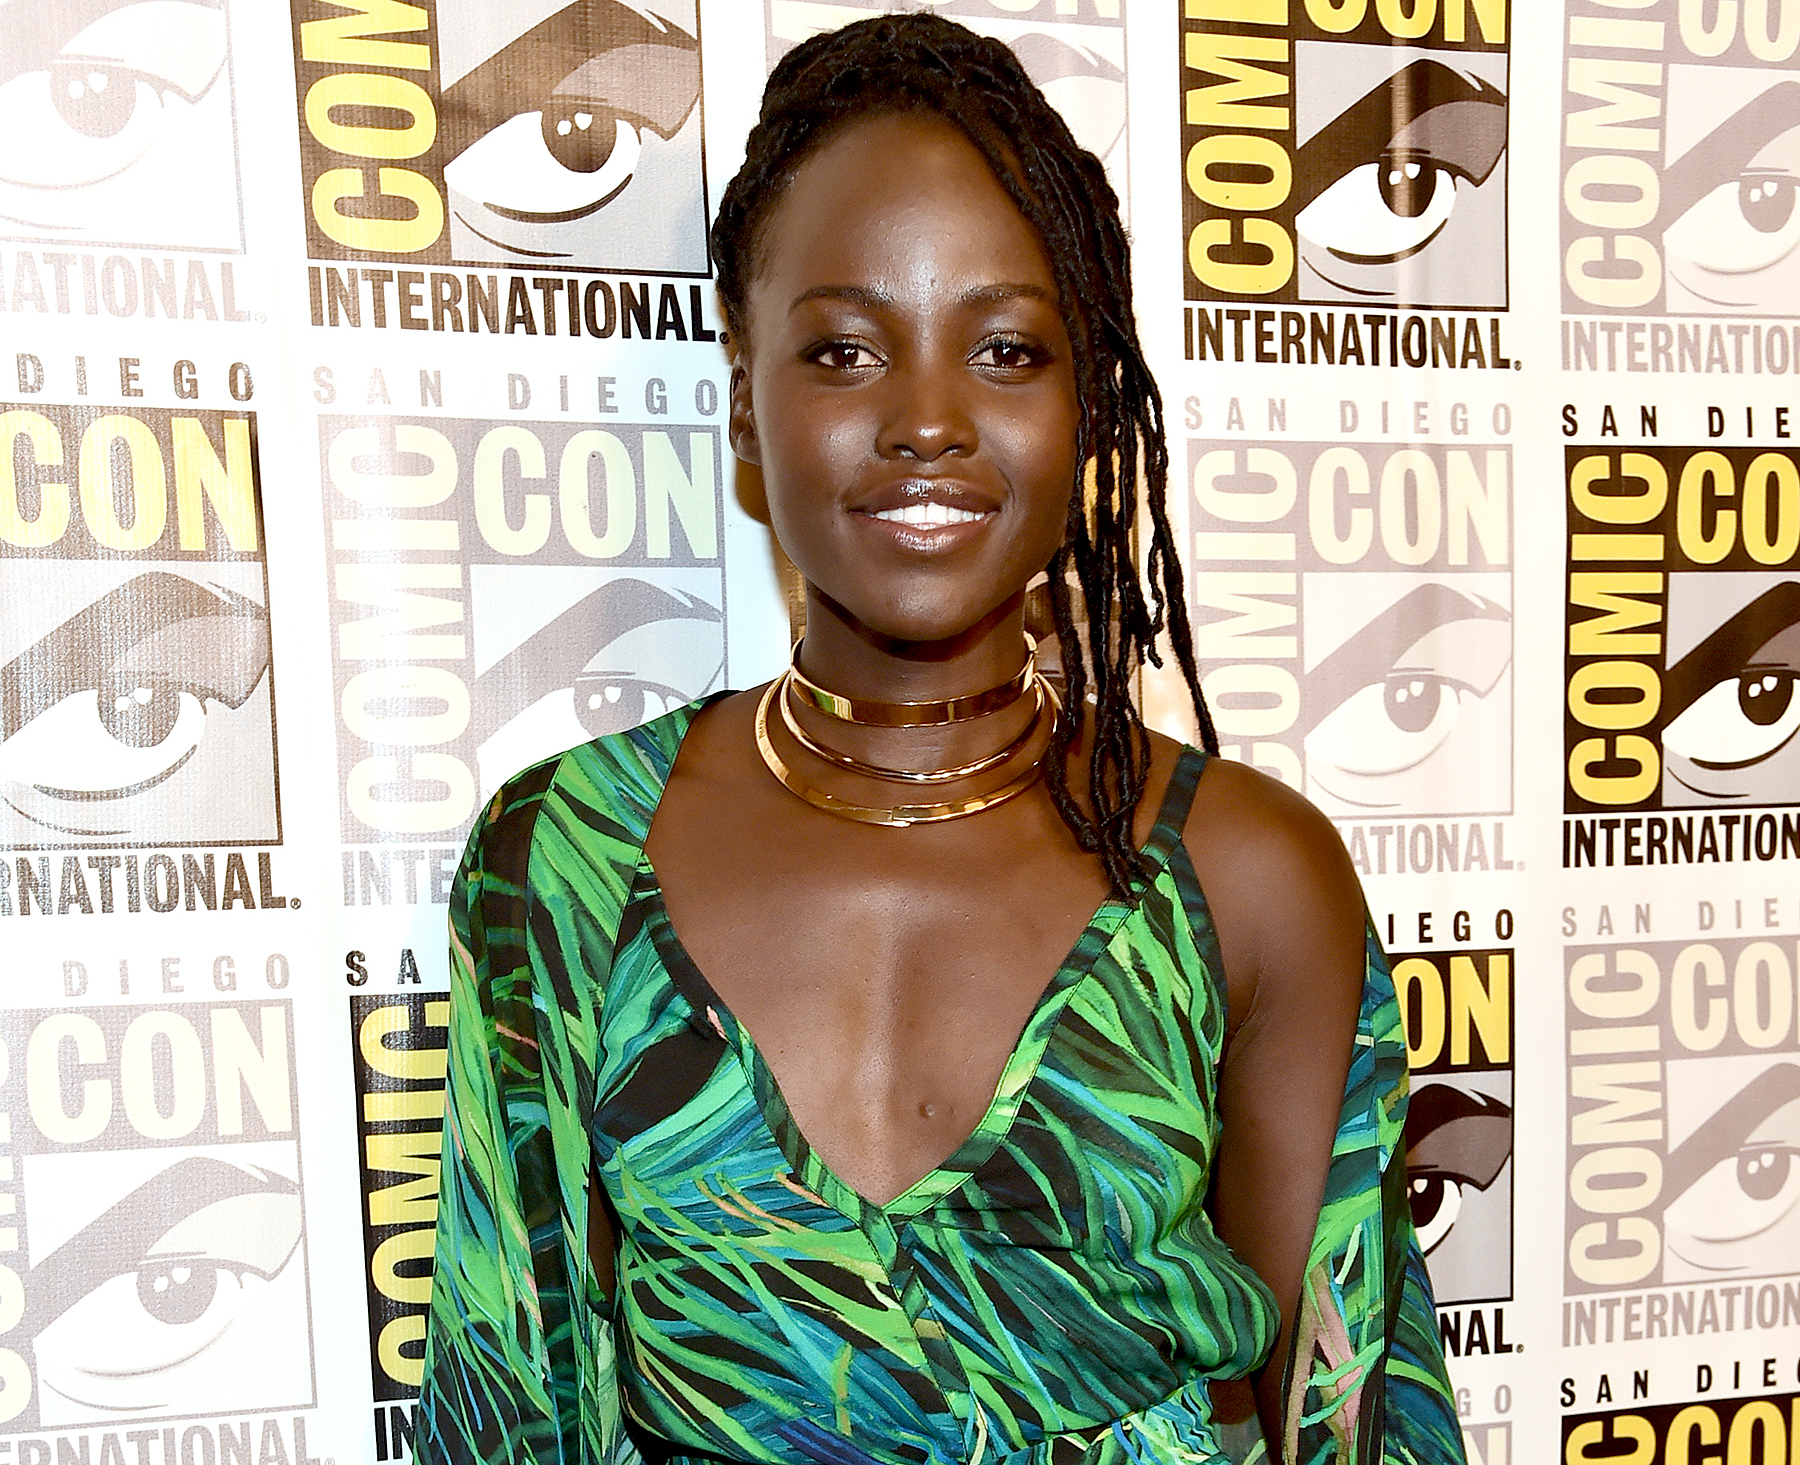 Lupita Nyong'o from Marvel Studios Black Panther at the San Diego Comic-Con International 2017 Marvel Studios Panel in Hall H on July 22, 2017 in San Diego, California.